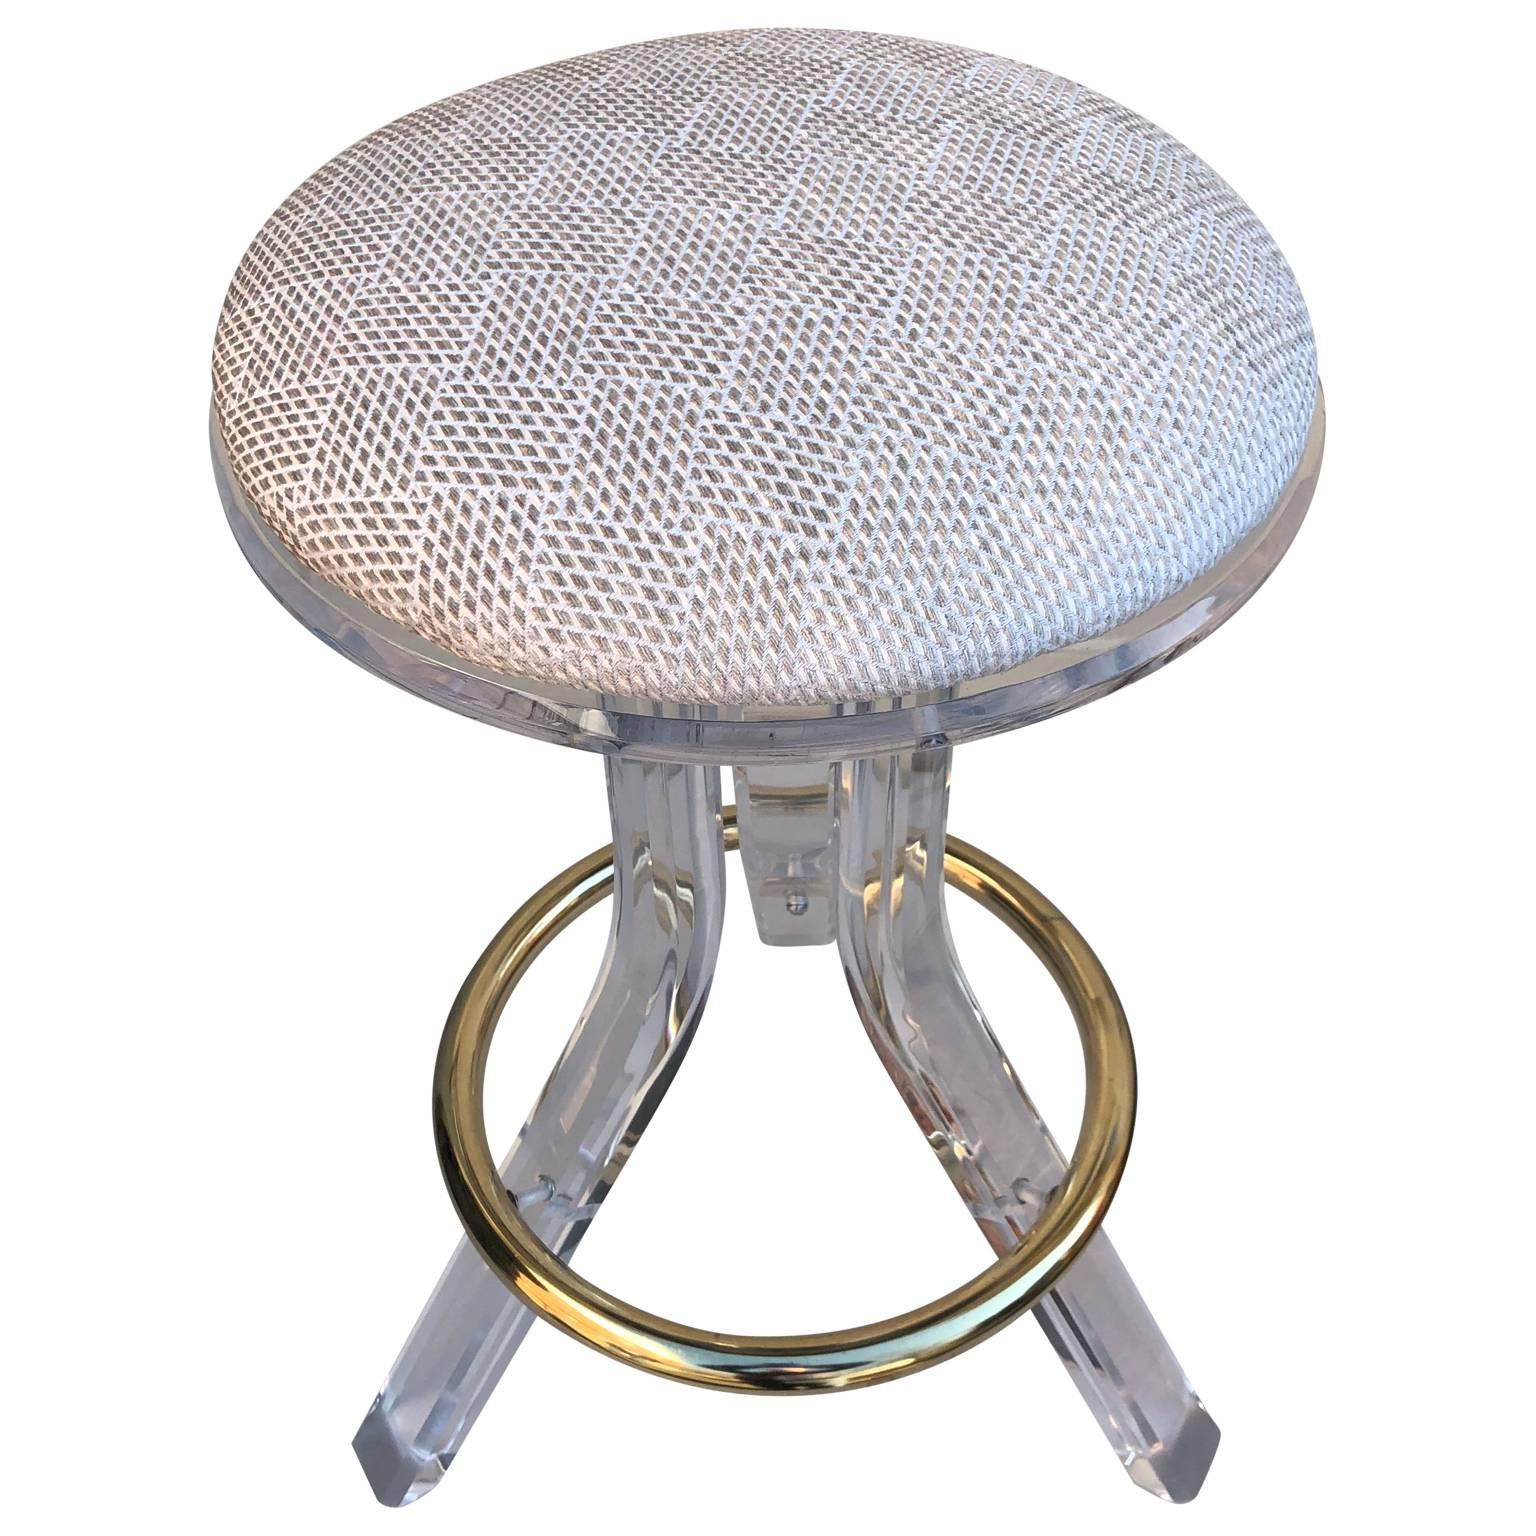 single 1970s lucite vanity stool with brass foot rest